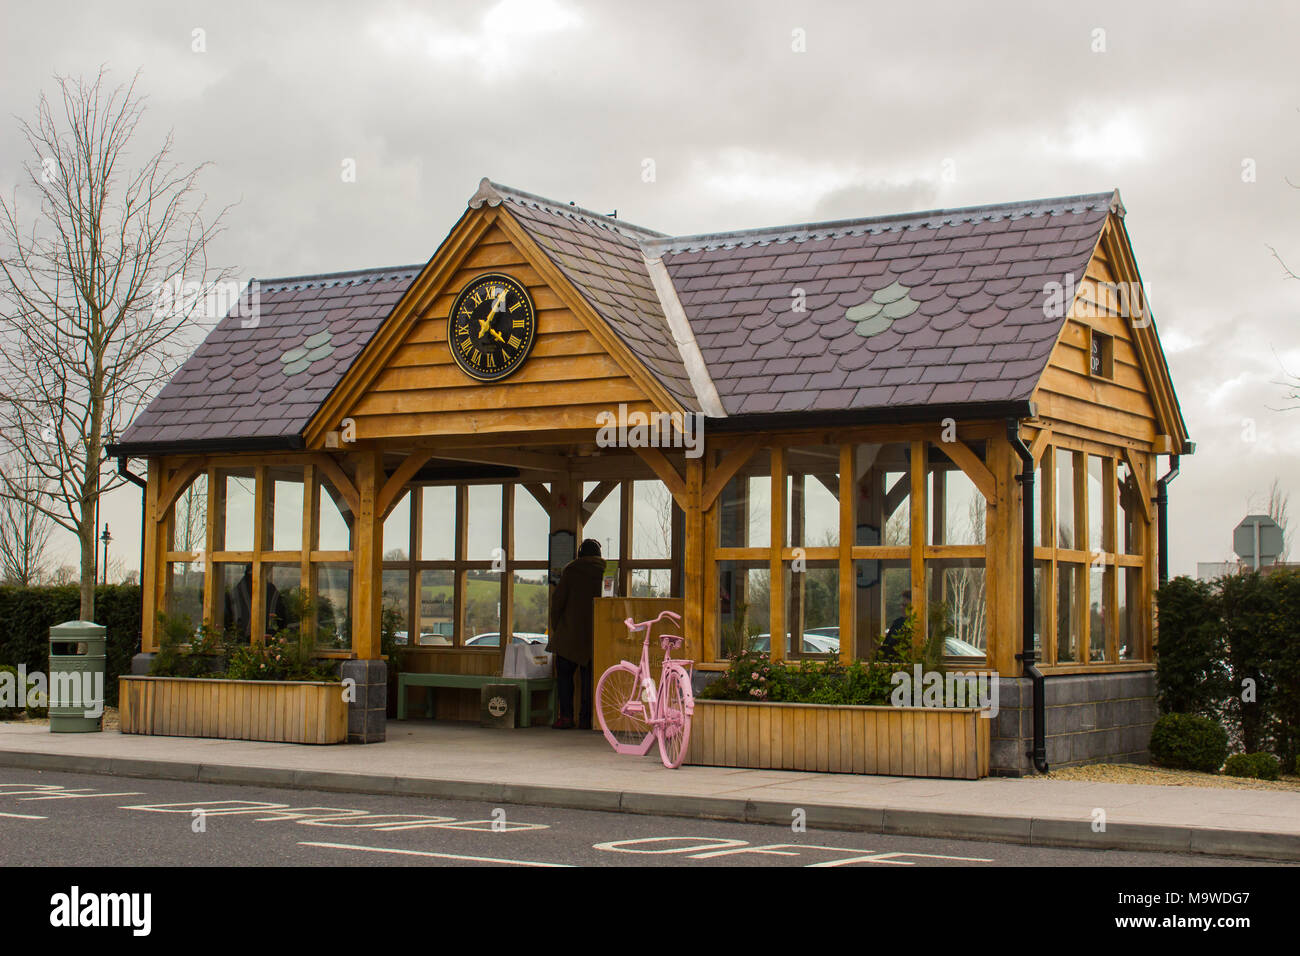 The pick up and drop off point for the free transport service at the prestigious Kildare Village retail outlet in county Kildare Ireland - Stock Image